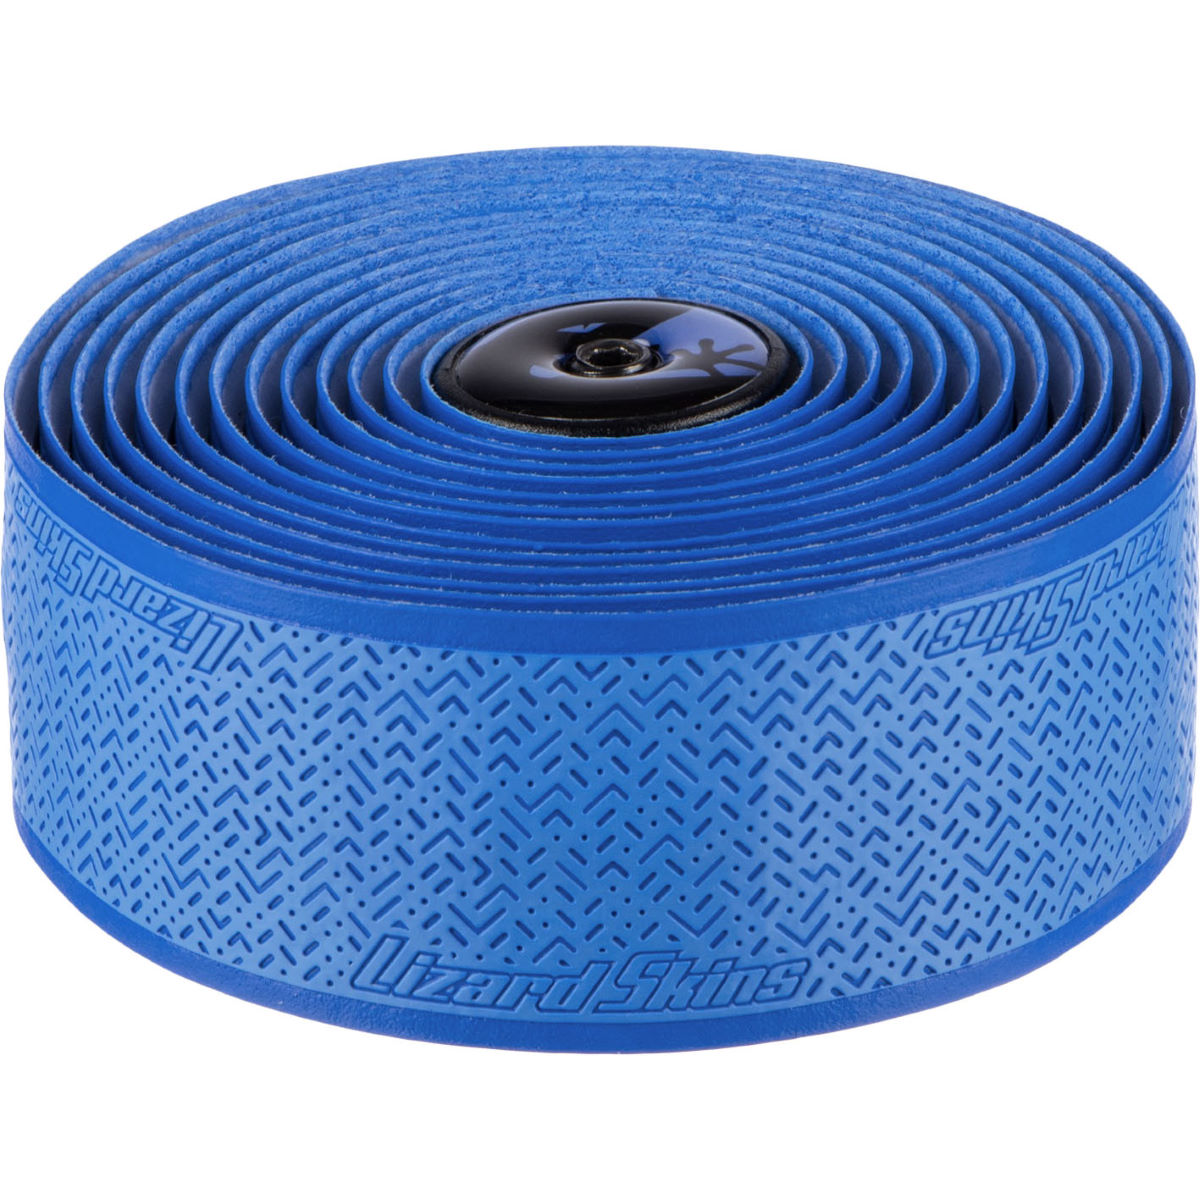 Lizard Skins Lizard Skins DSP V2 1.8mm Bar Tape   Bar Tape